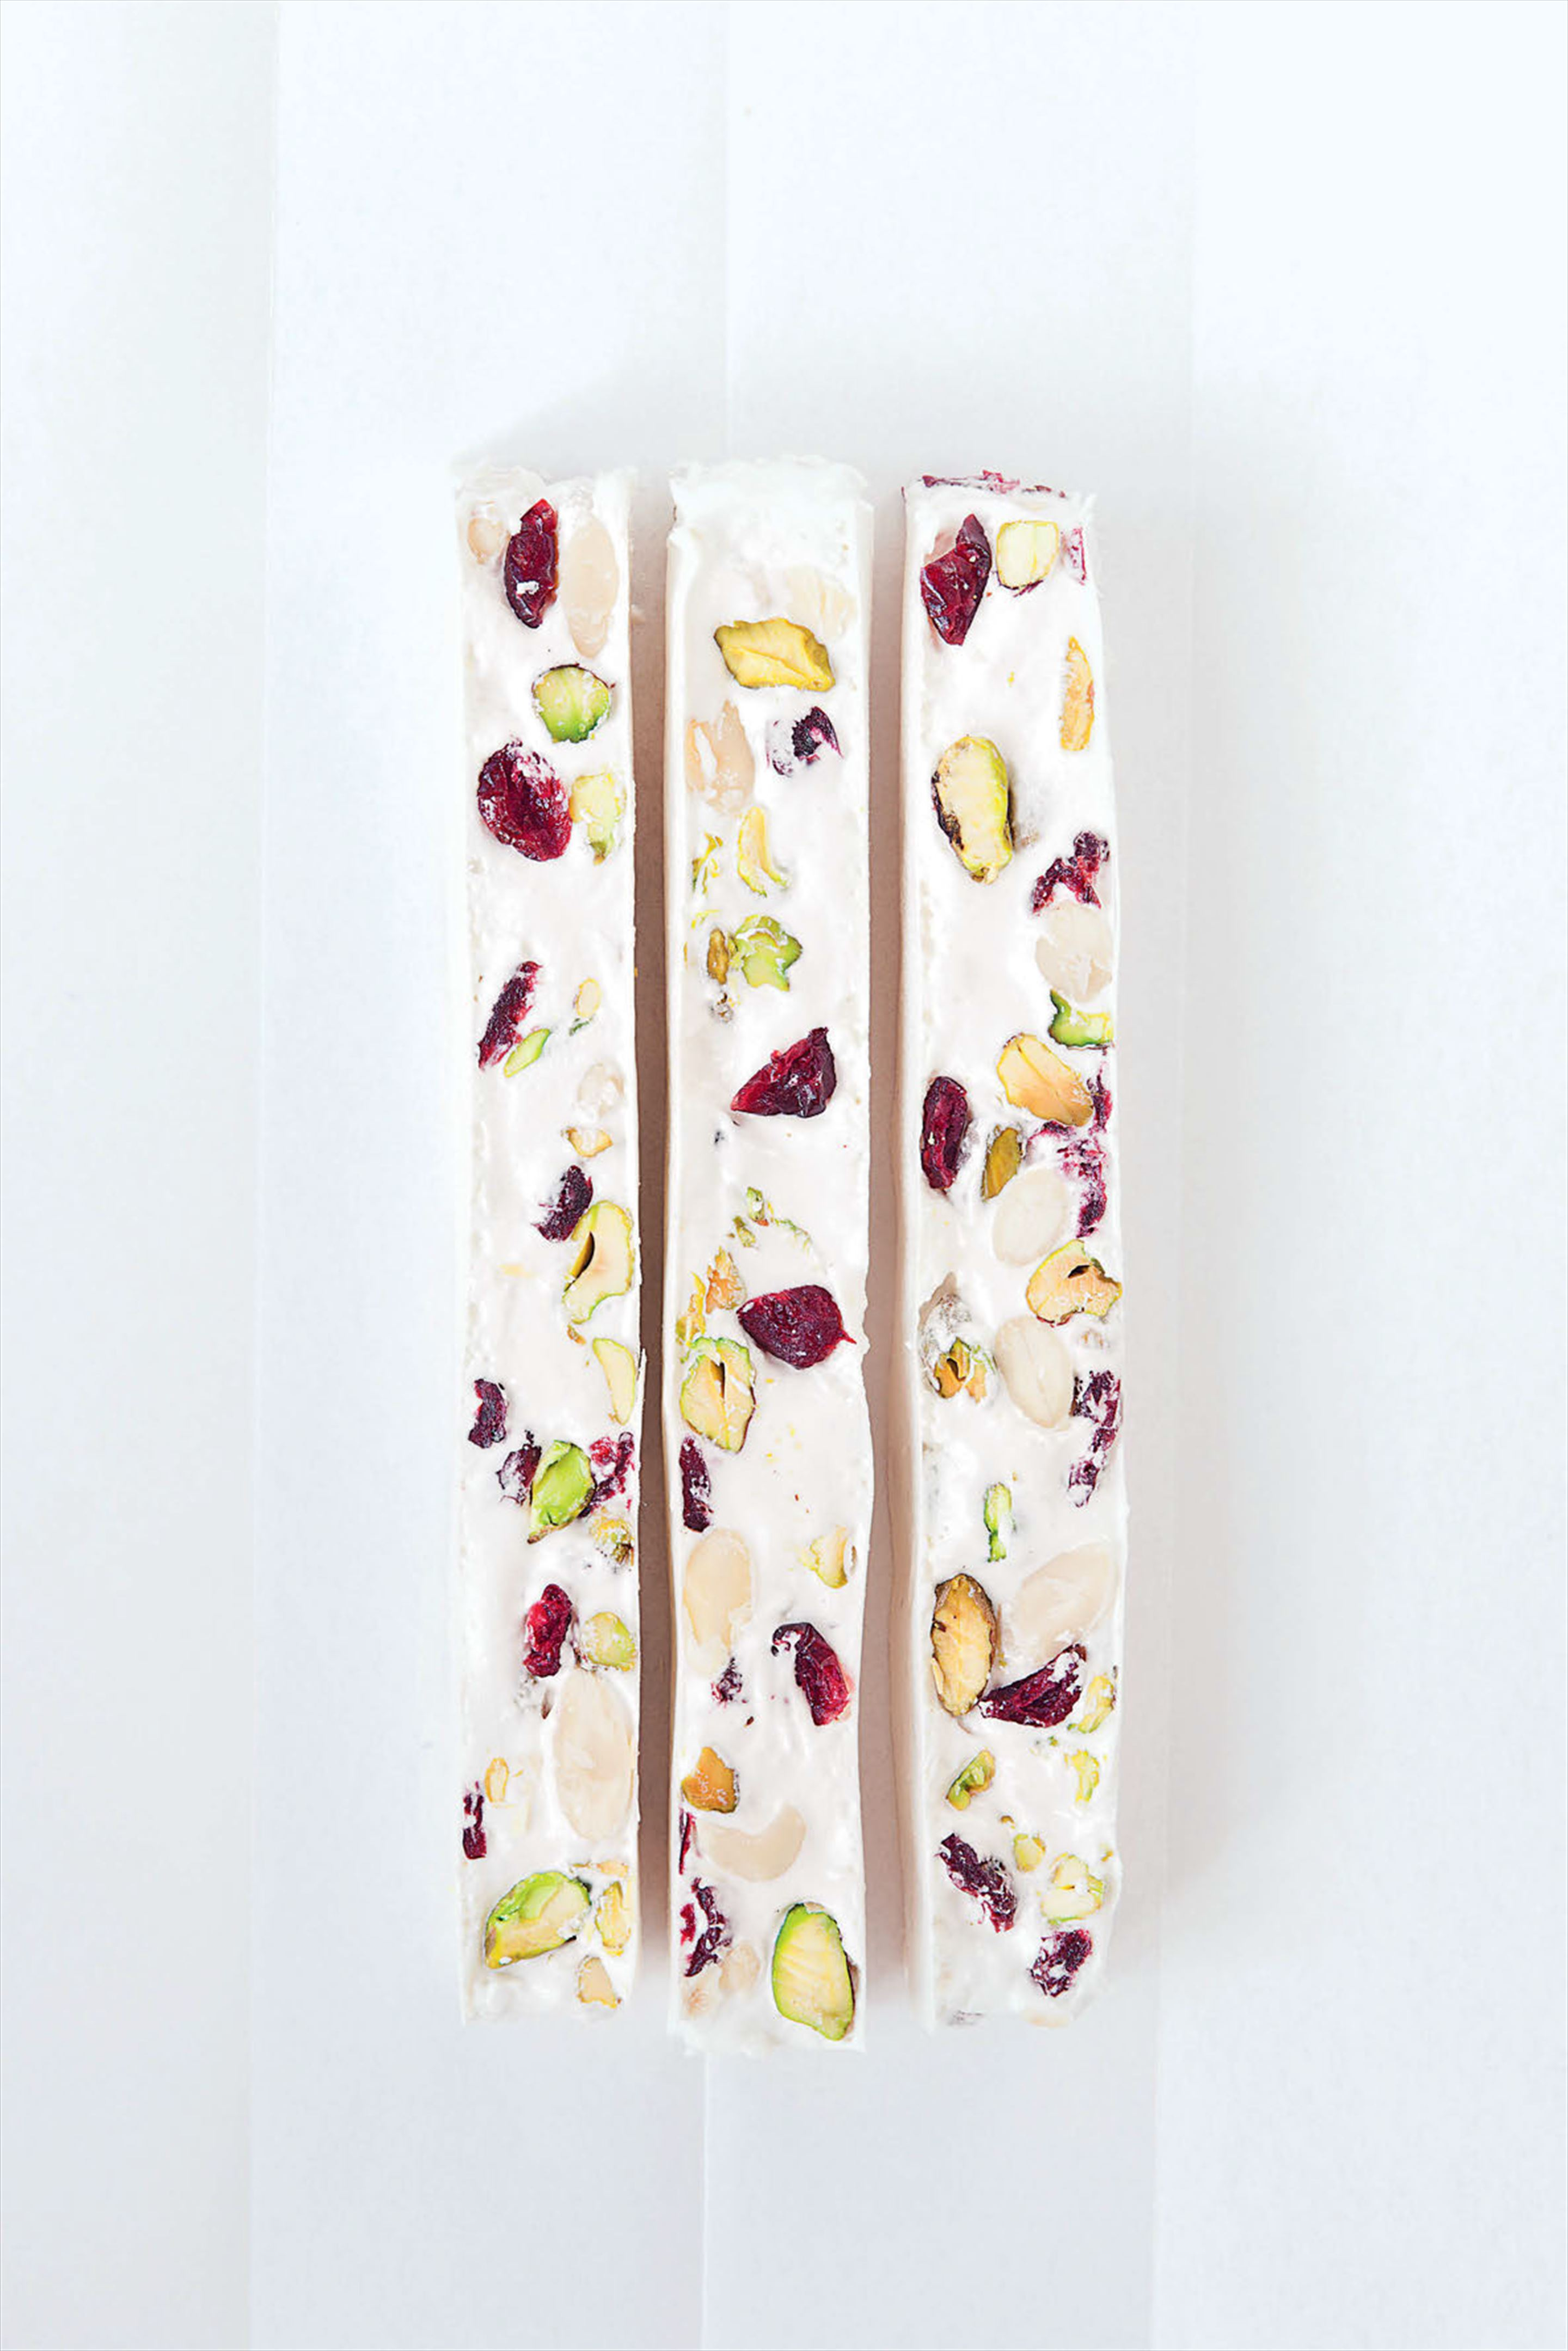 Basic nougat with pistachios, almonds and cherries